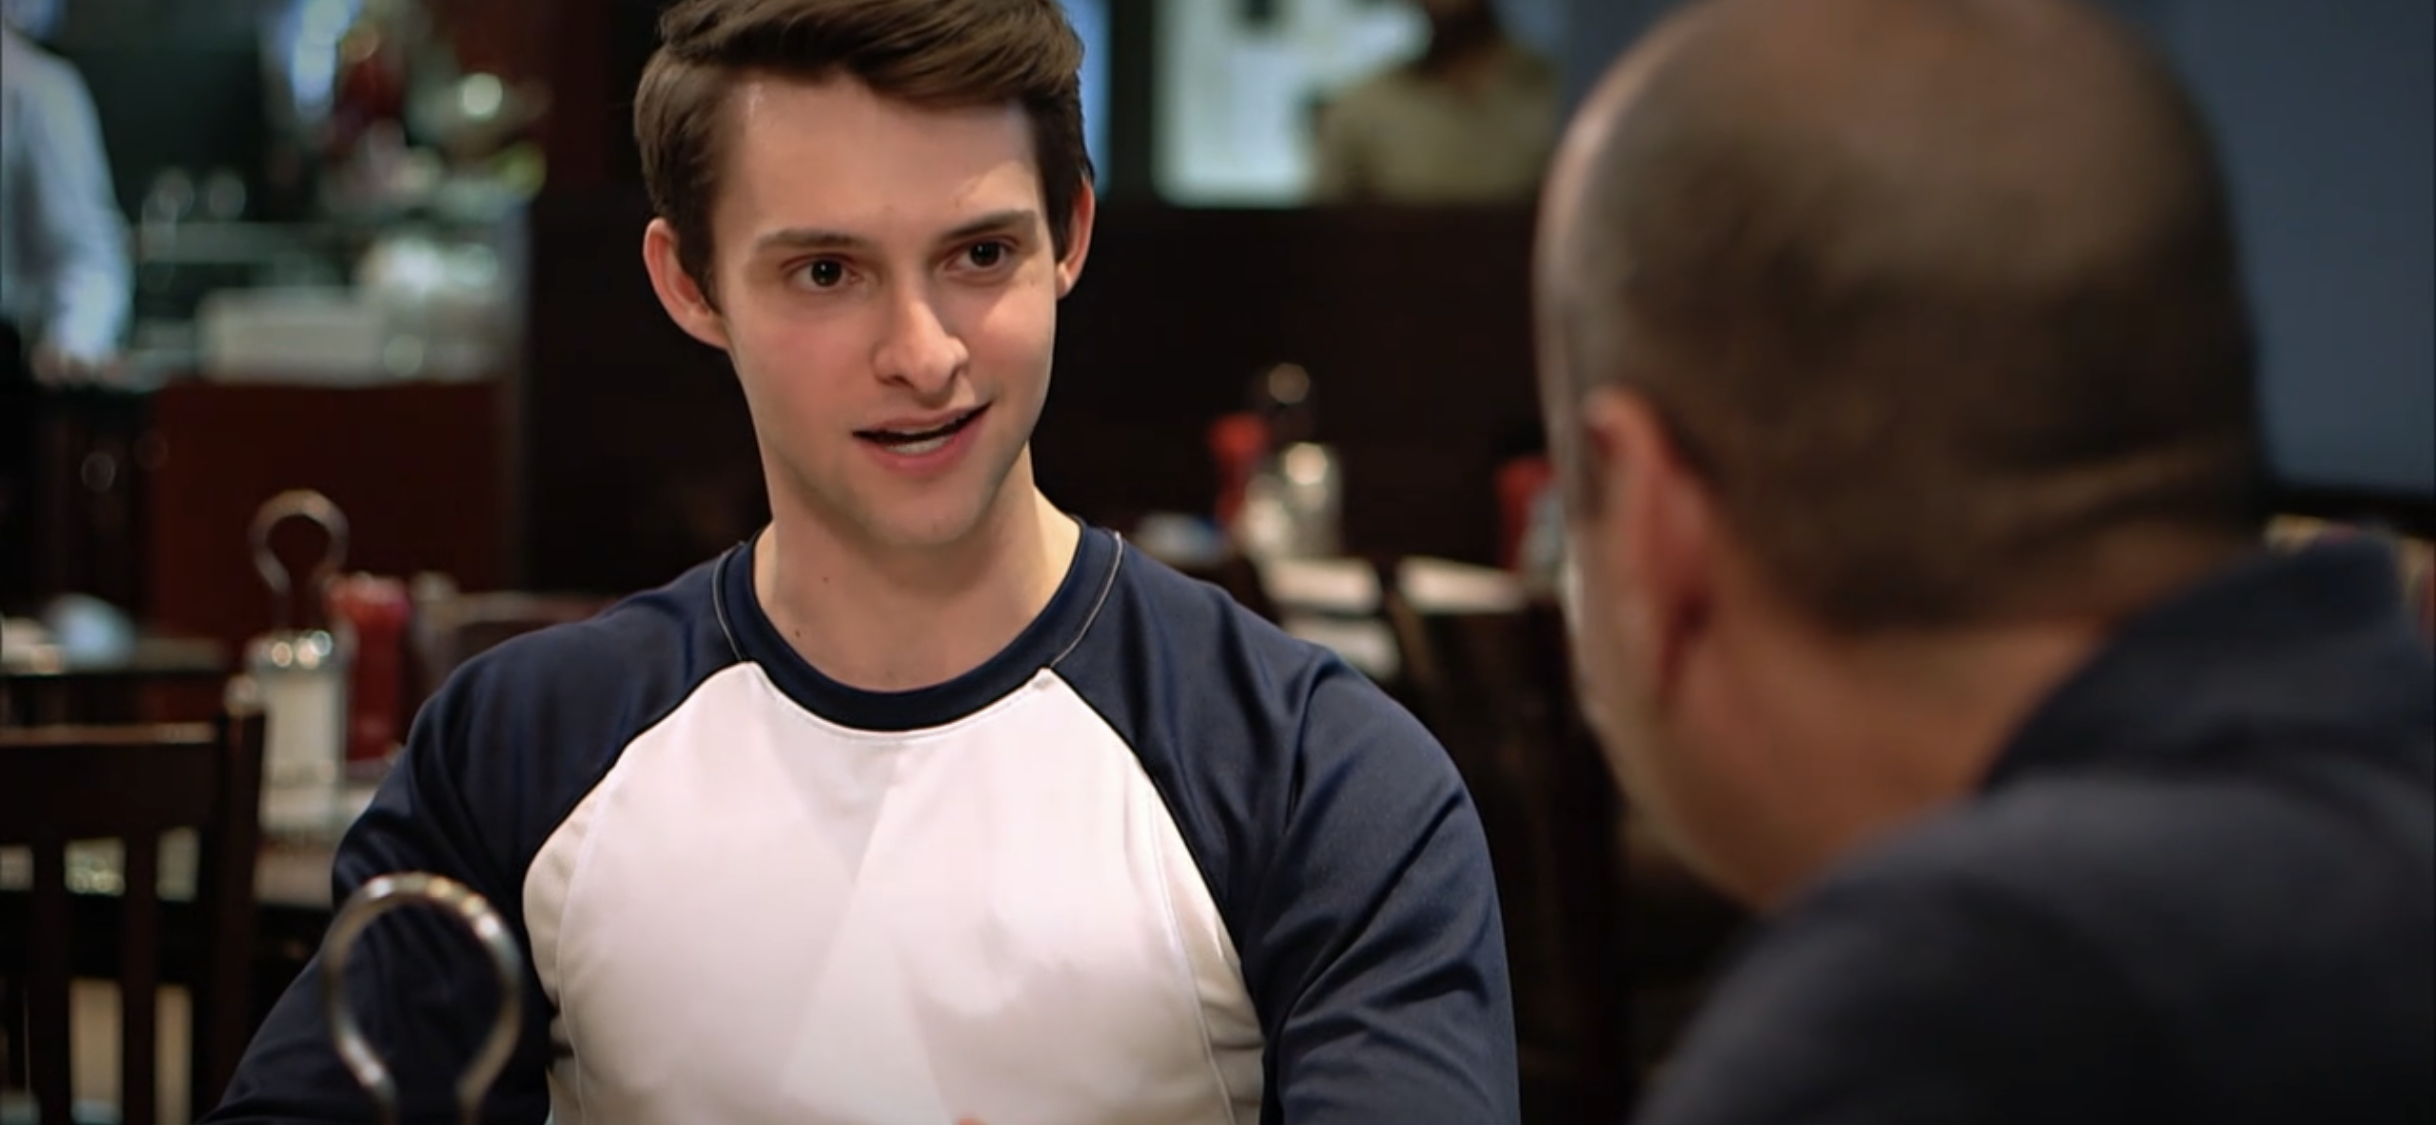 An actor portrayed a gay athlete coming out to his coach